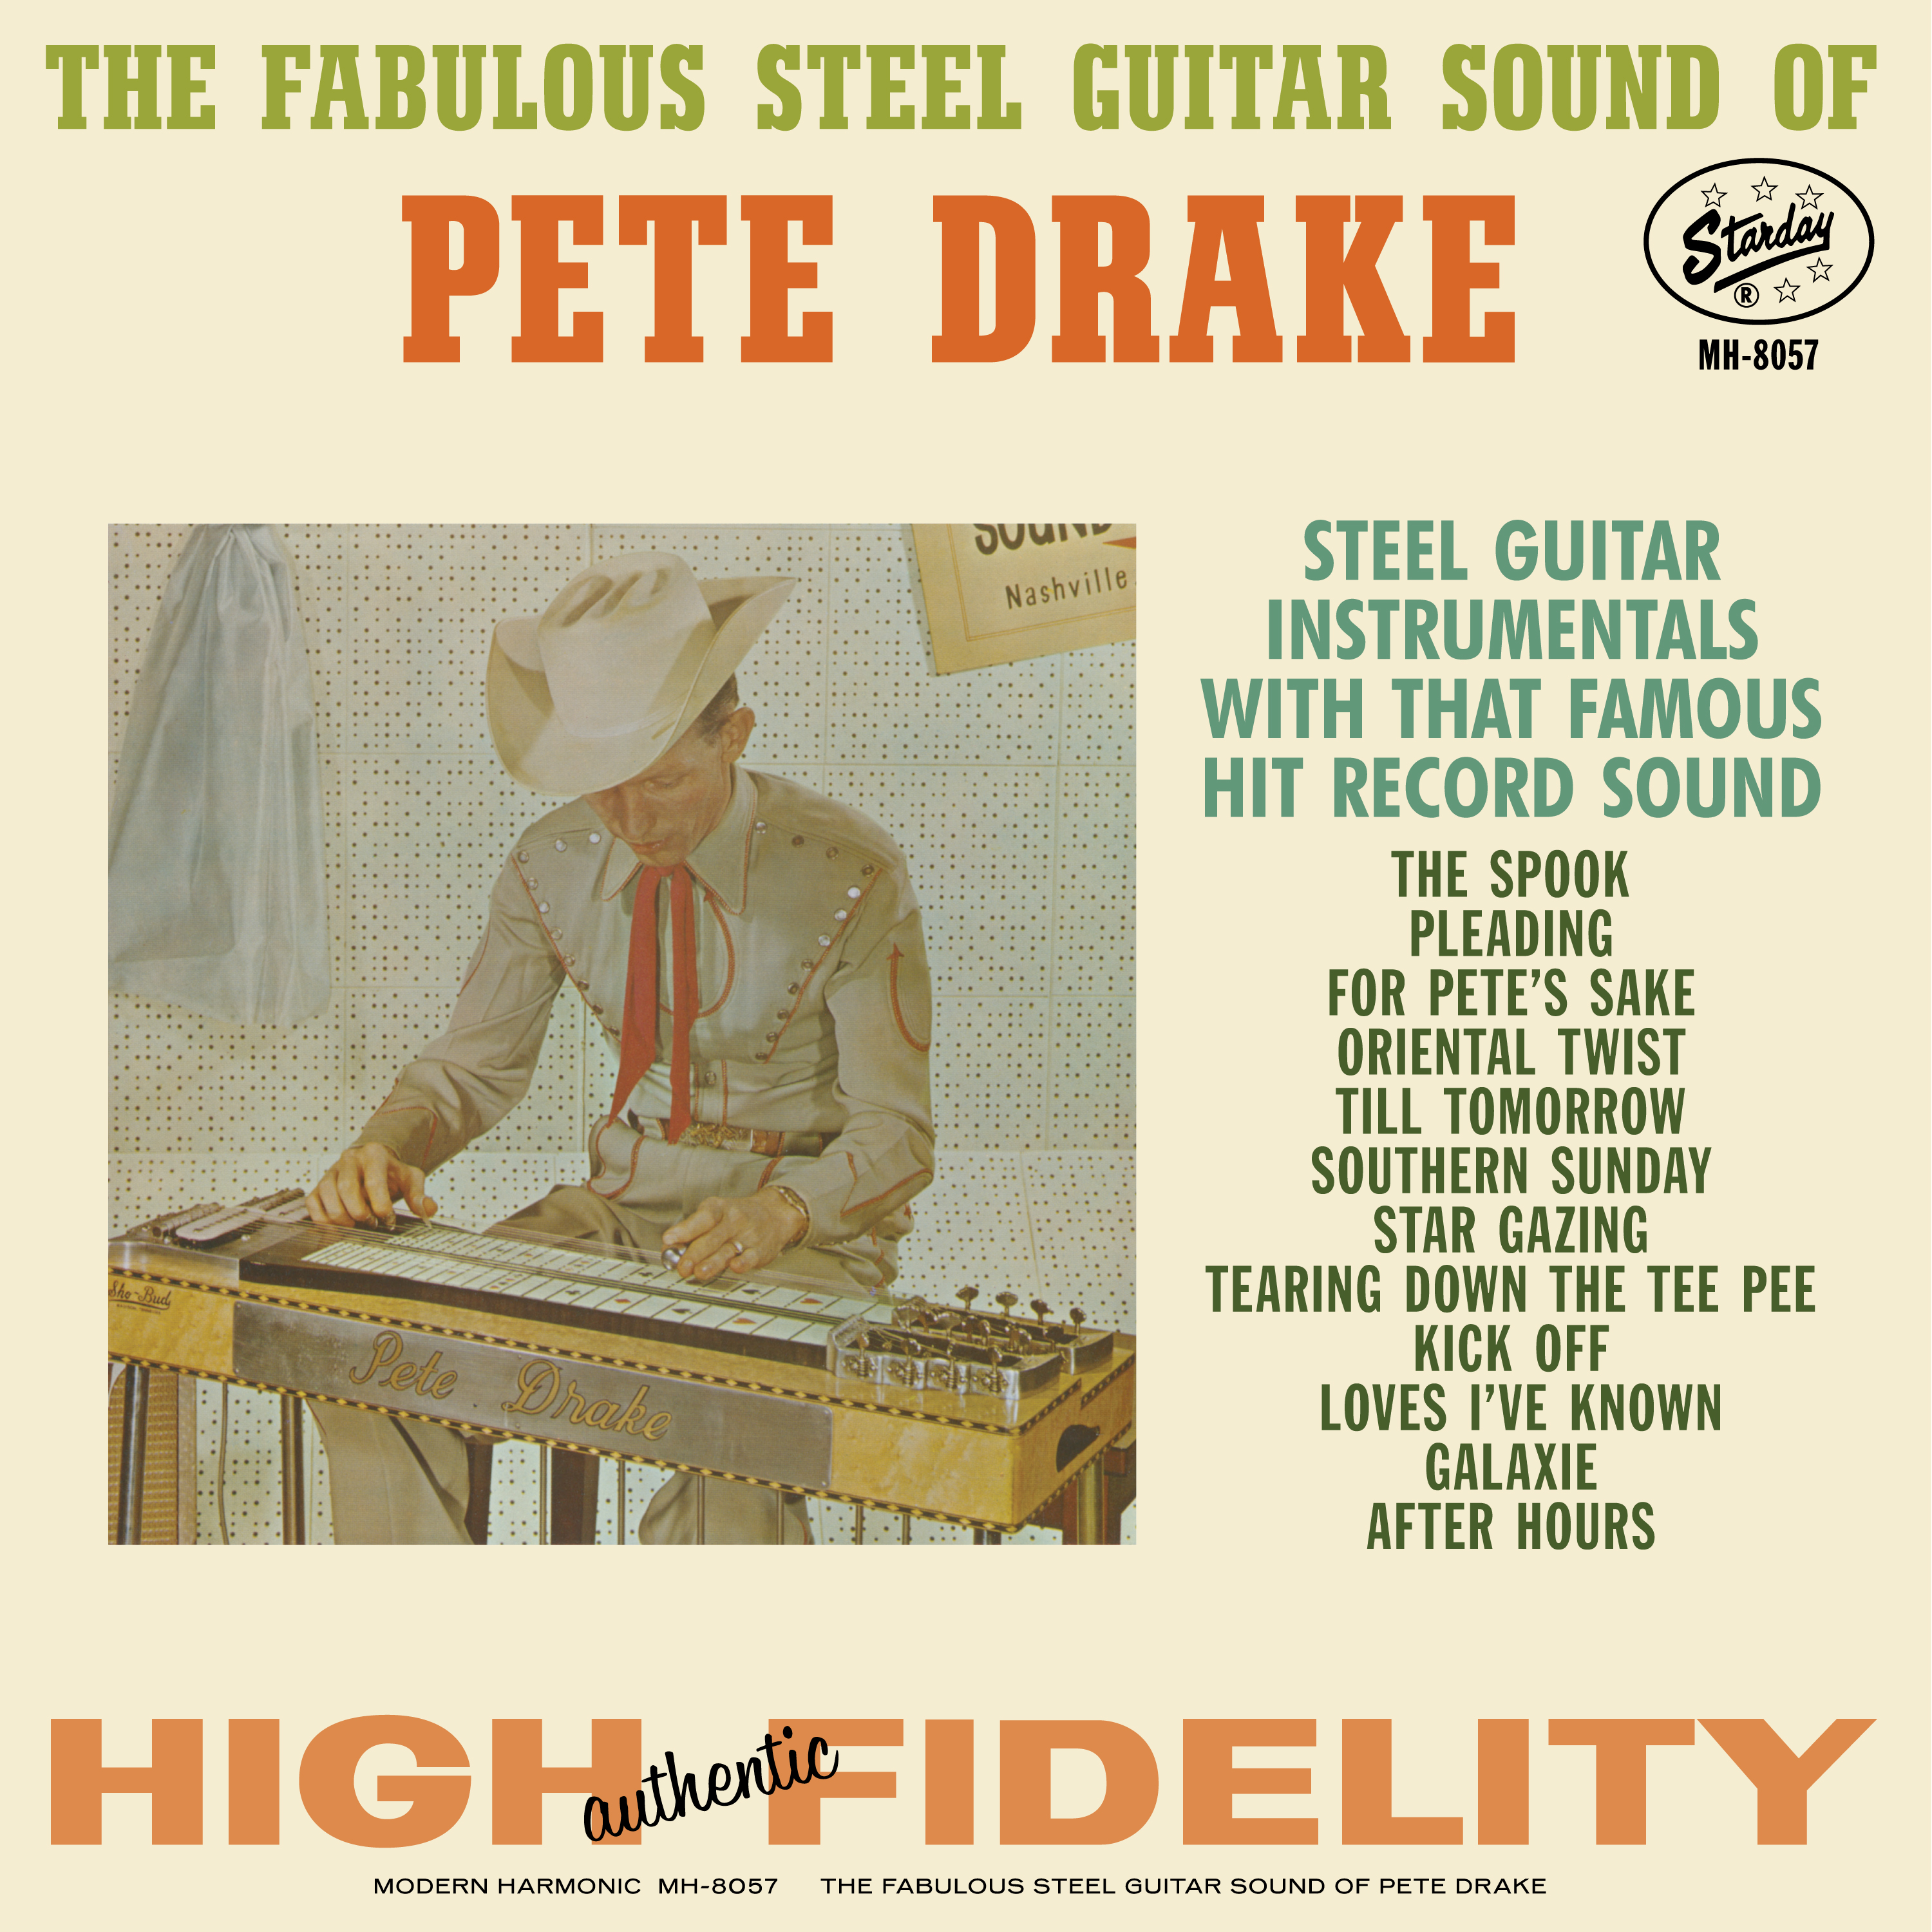 Drake, Pete - The Fabulous Steel Guitar Sound Of Pete Drake - LP